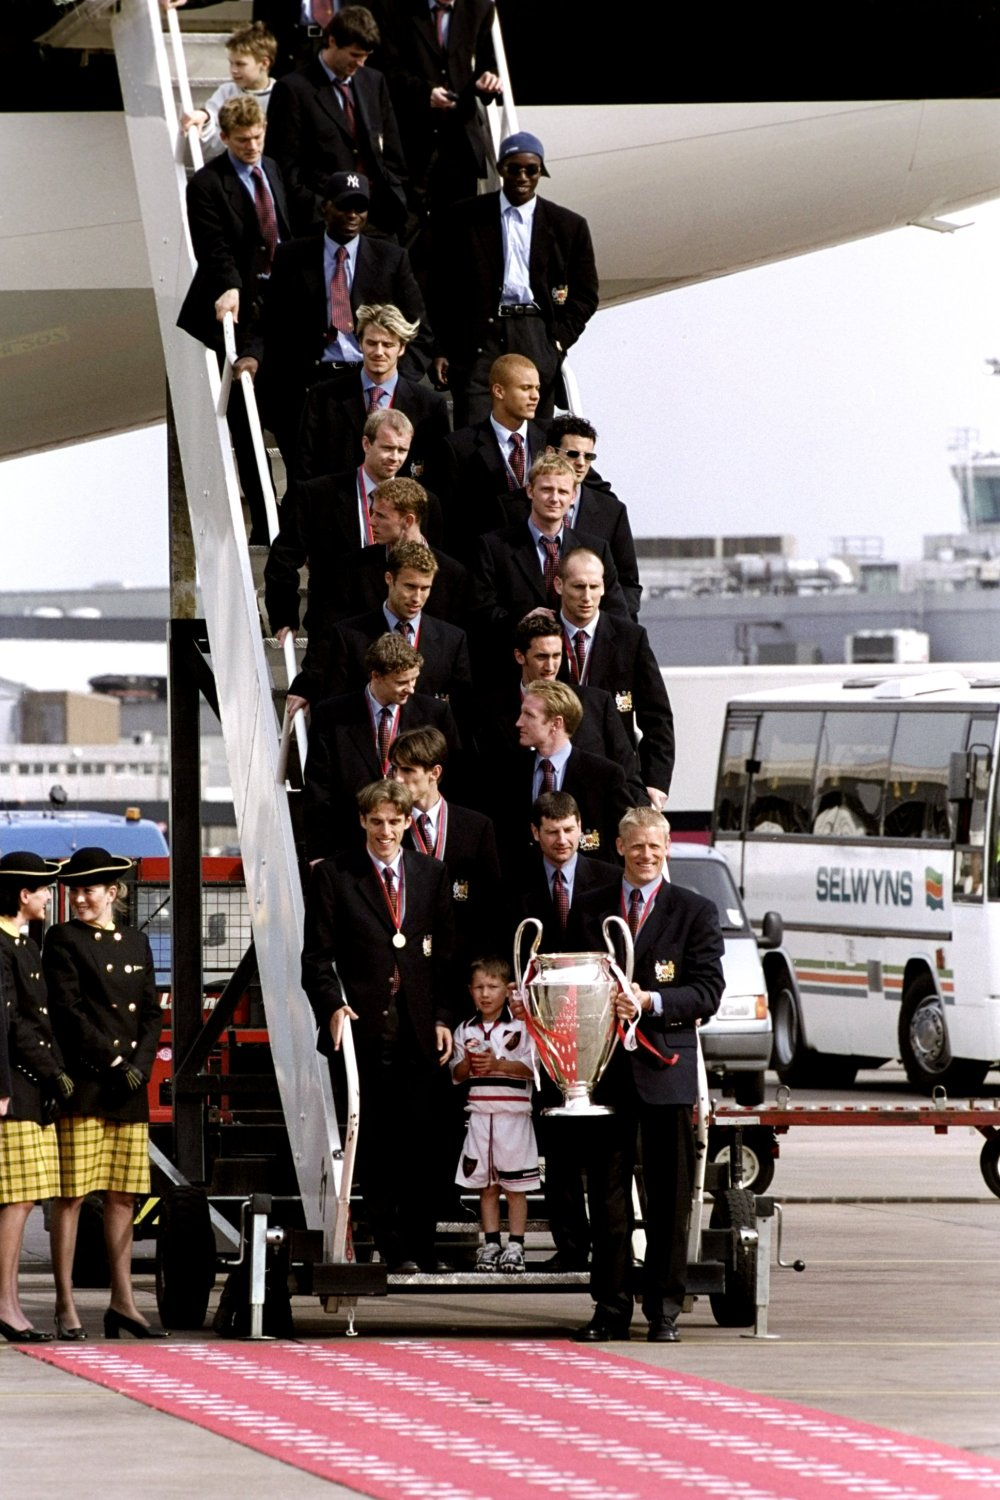 27 May 1999: Manchester United return home with the European Cup after victory in the UEFA Champions League final over Bayern Munich. Pic: Dave Tyrell Mandatory Credit: Allsport UK /Allsport